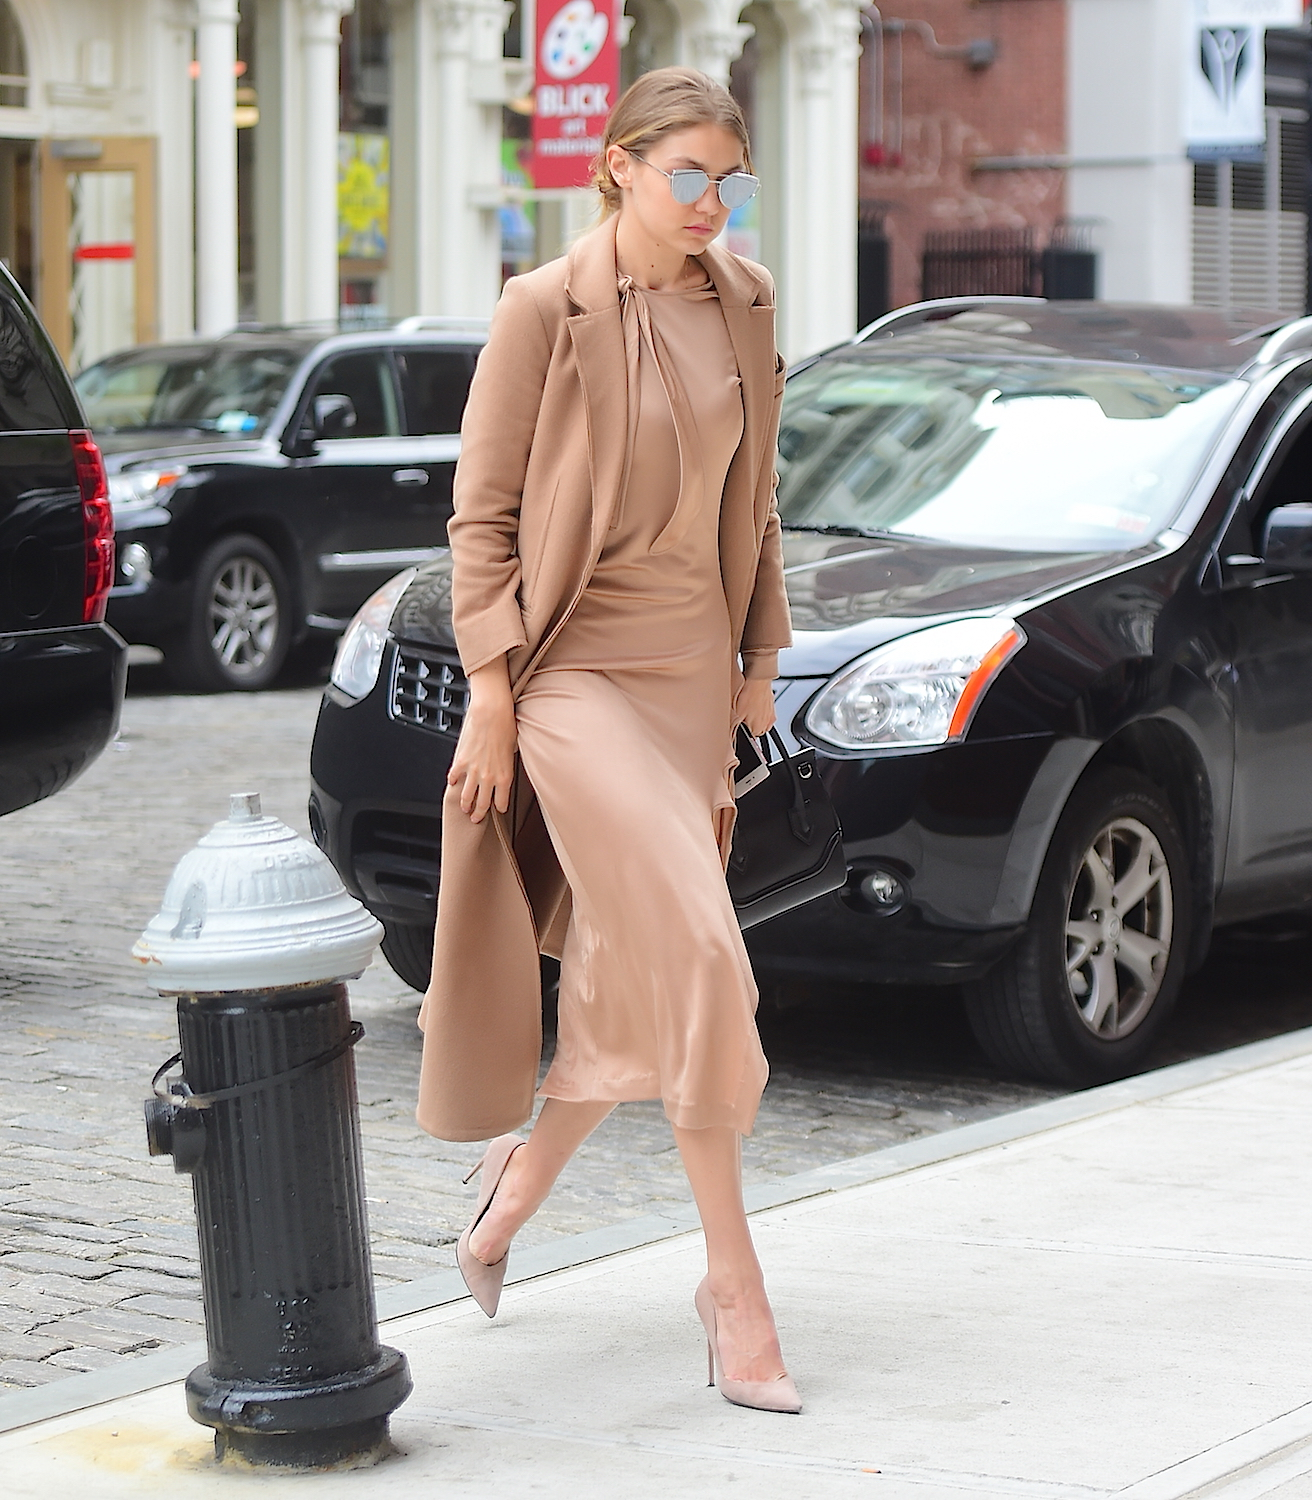 Gigi Hadid struts her model physique in tan fringed dress.